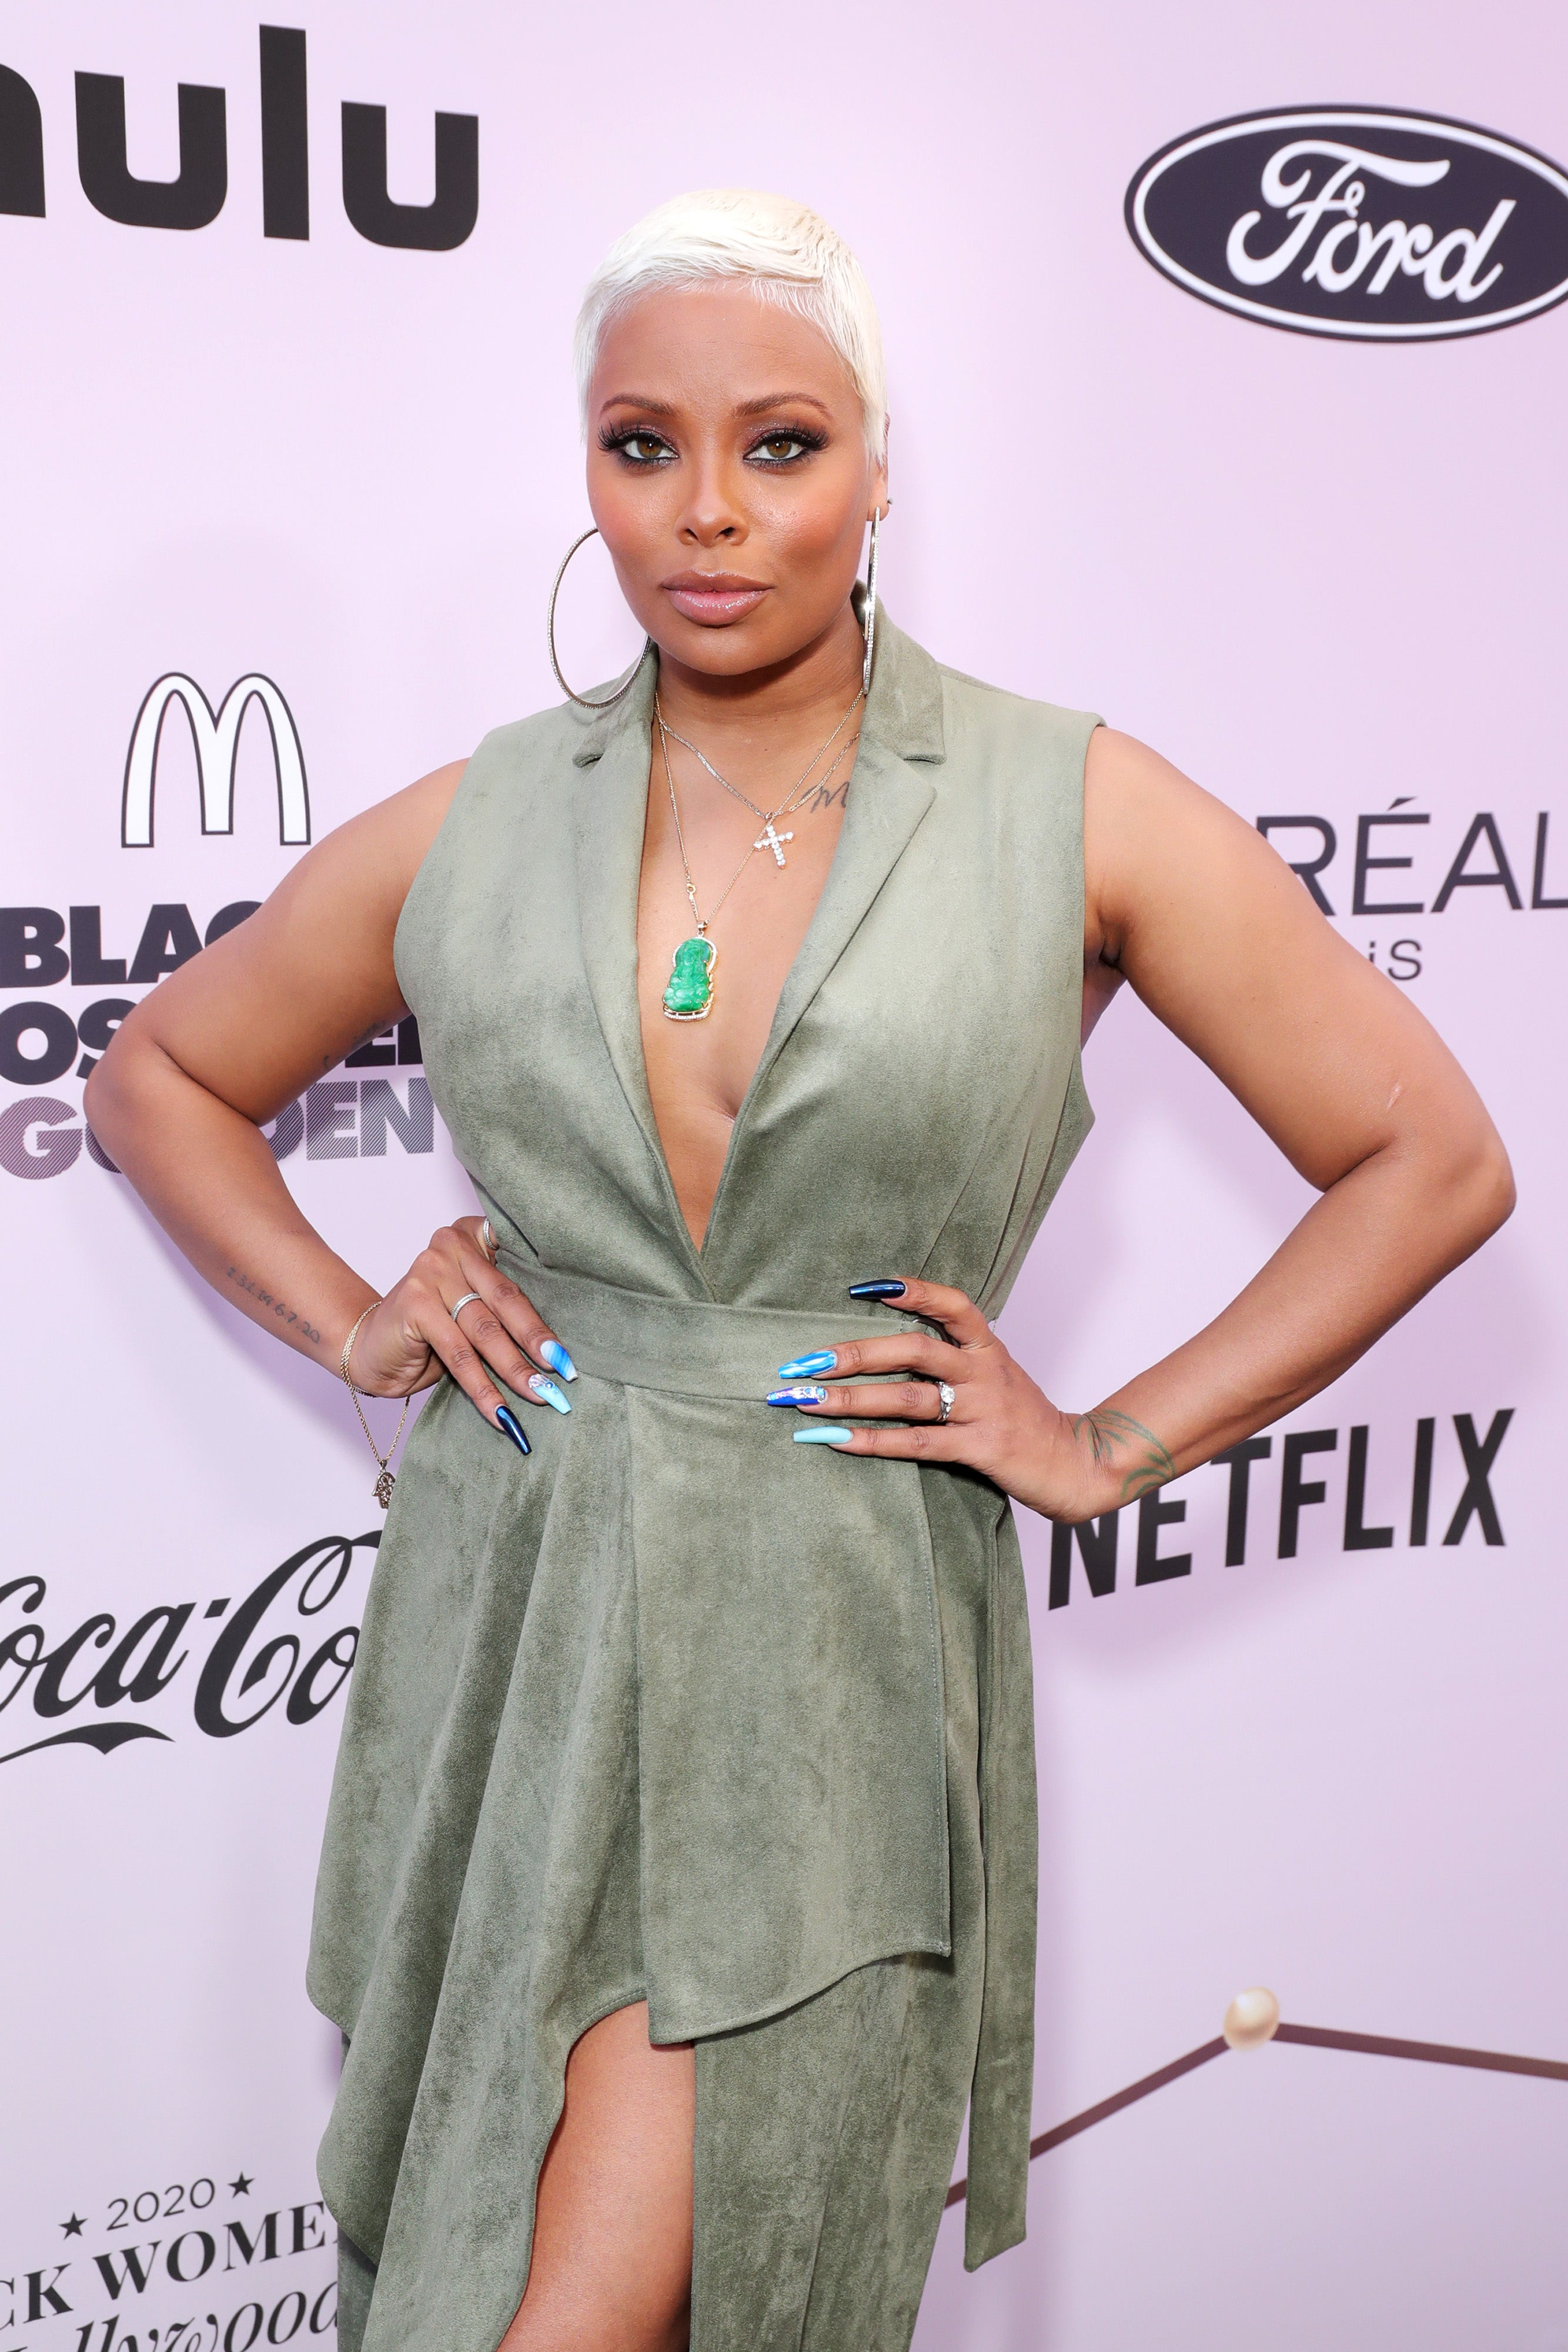 Eva Marcille Simply Took Blond Hair To The Subsequent Degree